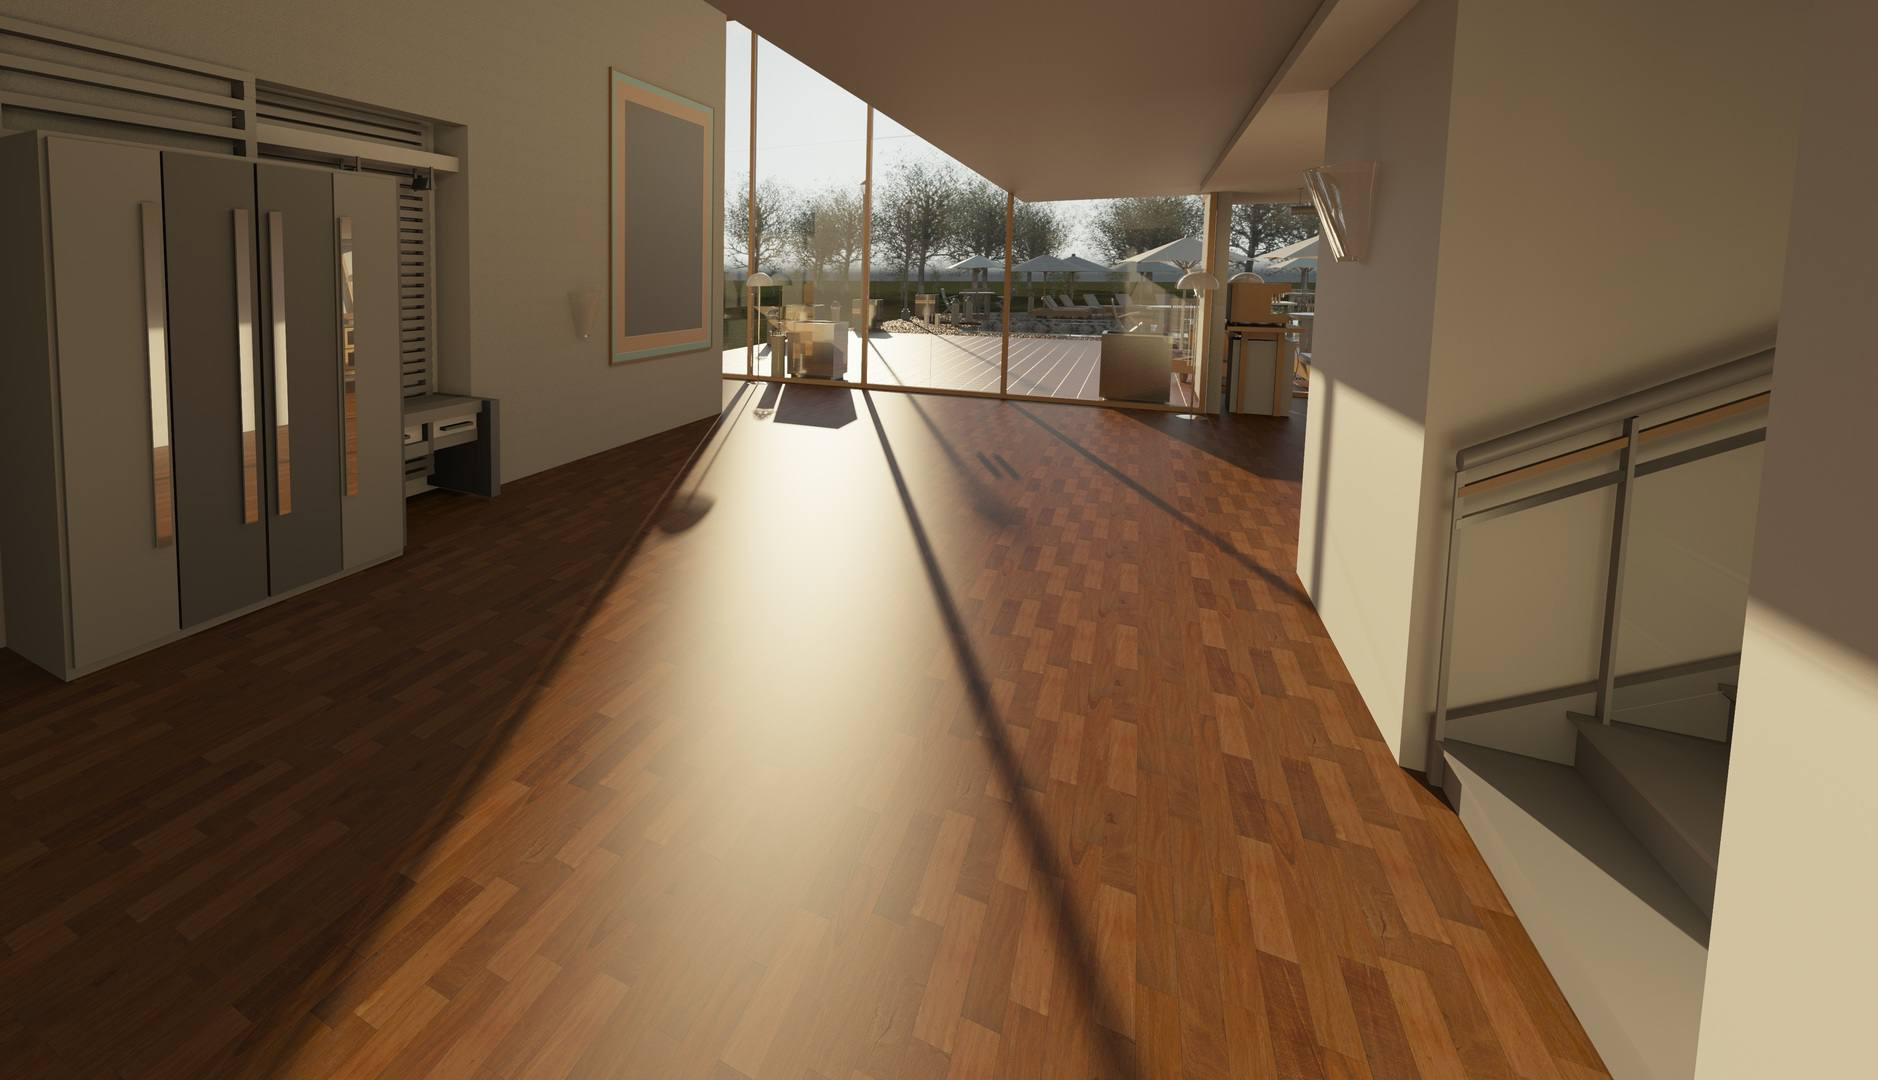 solid hardwood flooring near me of common flooring types currently used in renovation and building intended for architecture wood house floor interior window 917178 pxhere com 5ba27a2cc9e77c00503b27b9